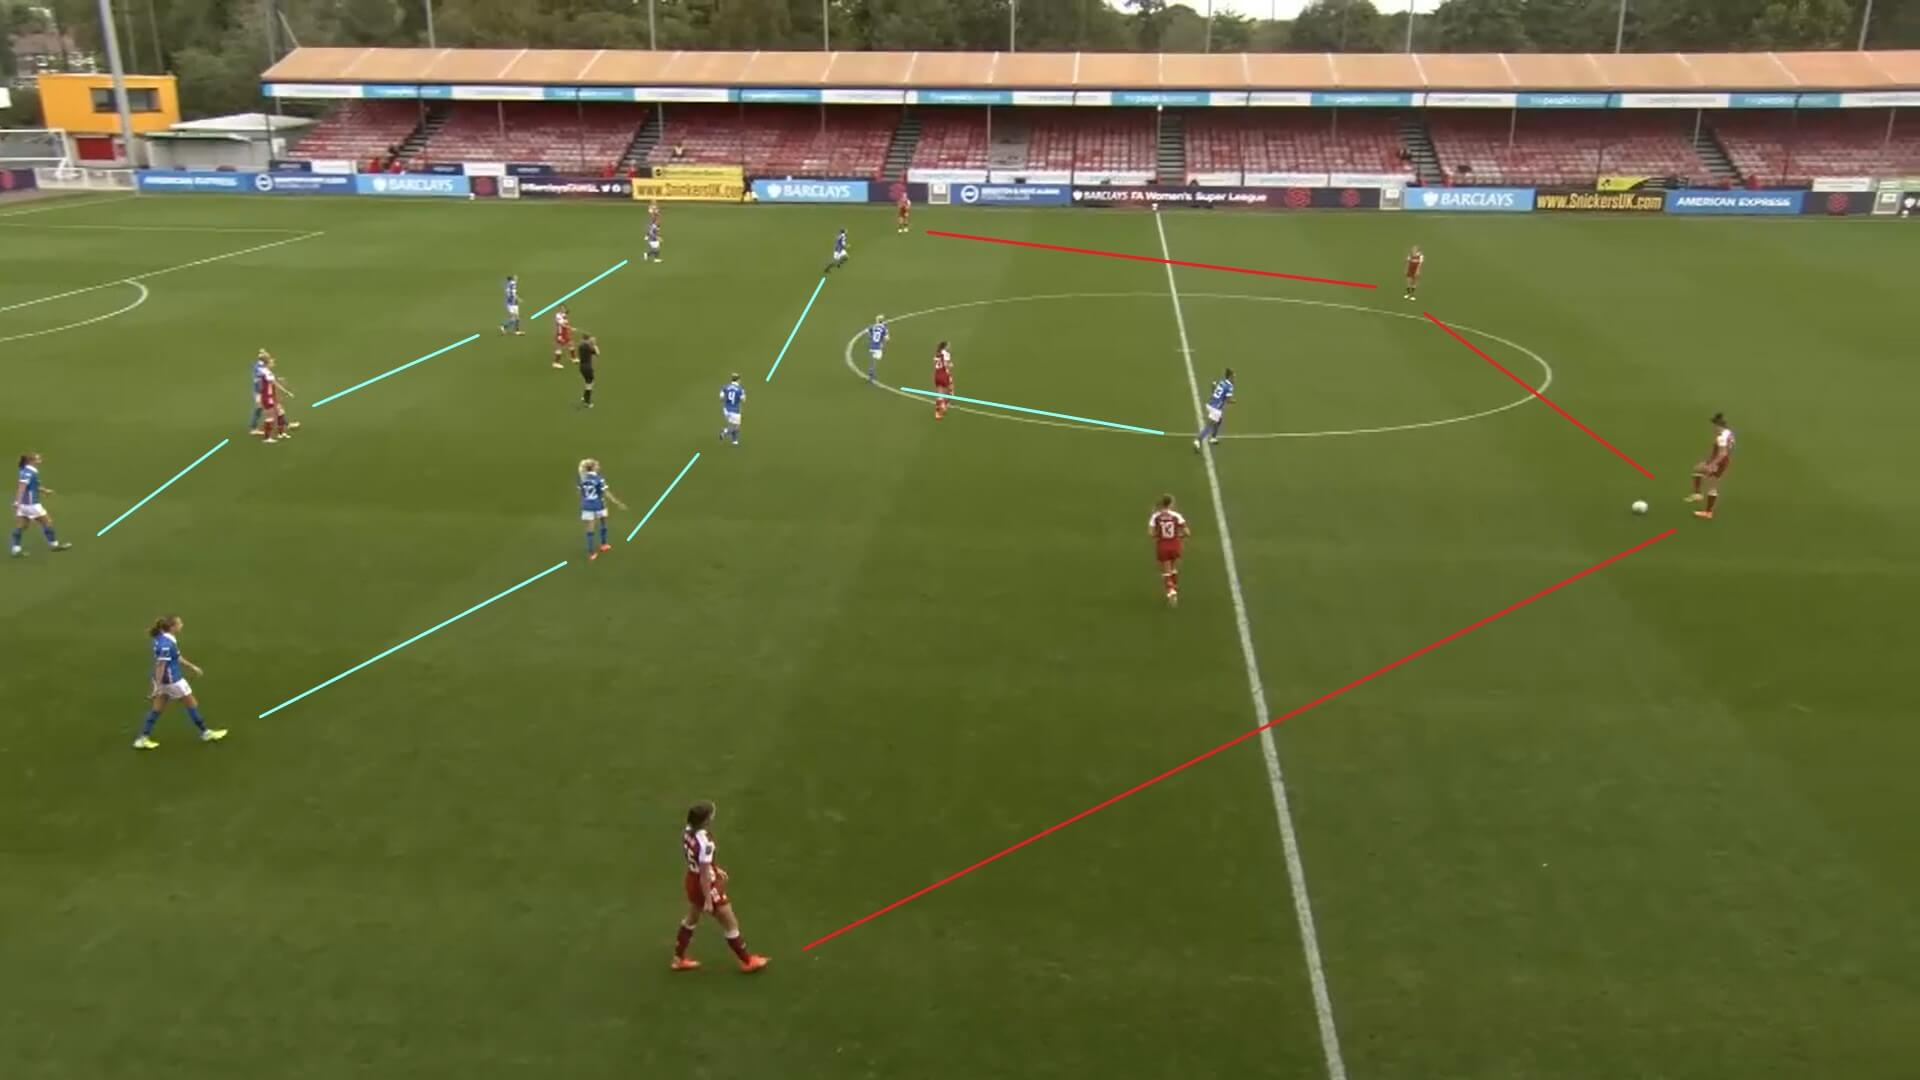 FAWSL 2020/2021: Brighton and Hove Albion Women v Arsenal Women - tactical analysis tactics